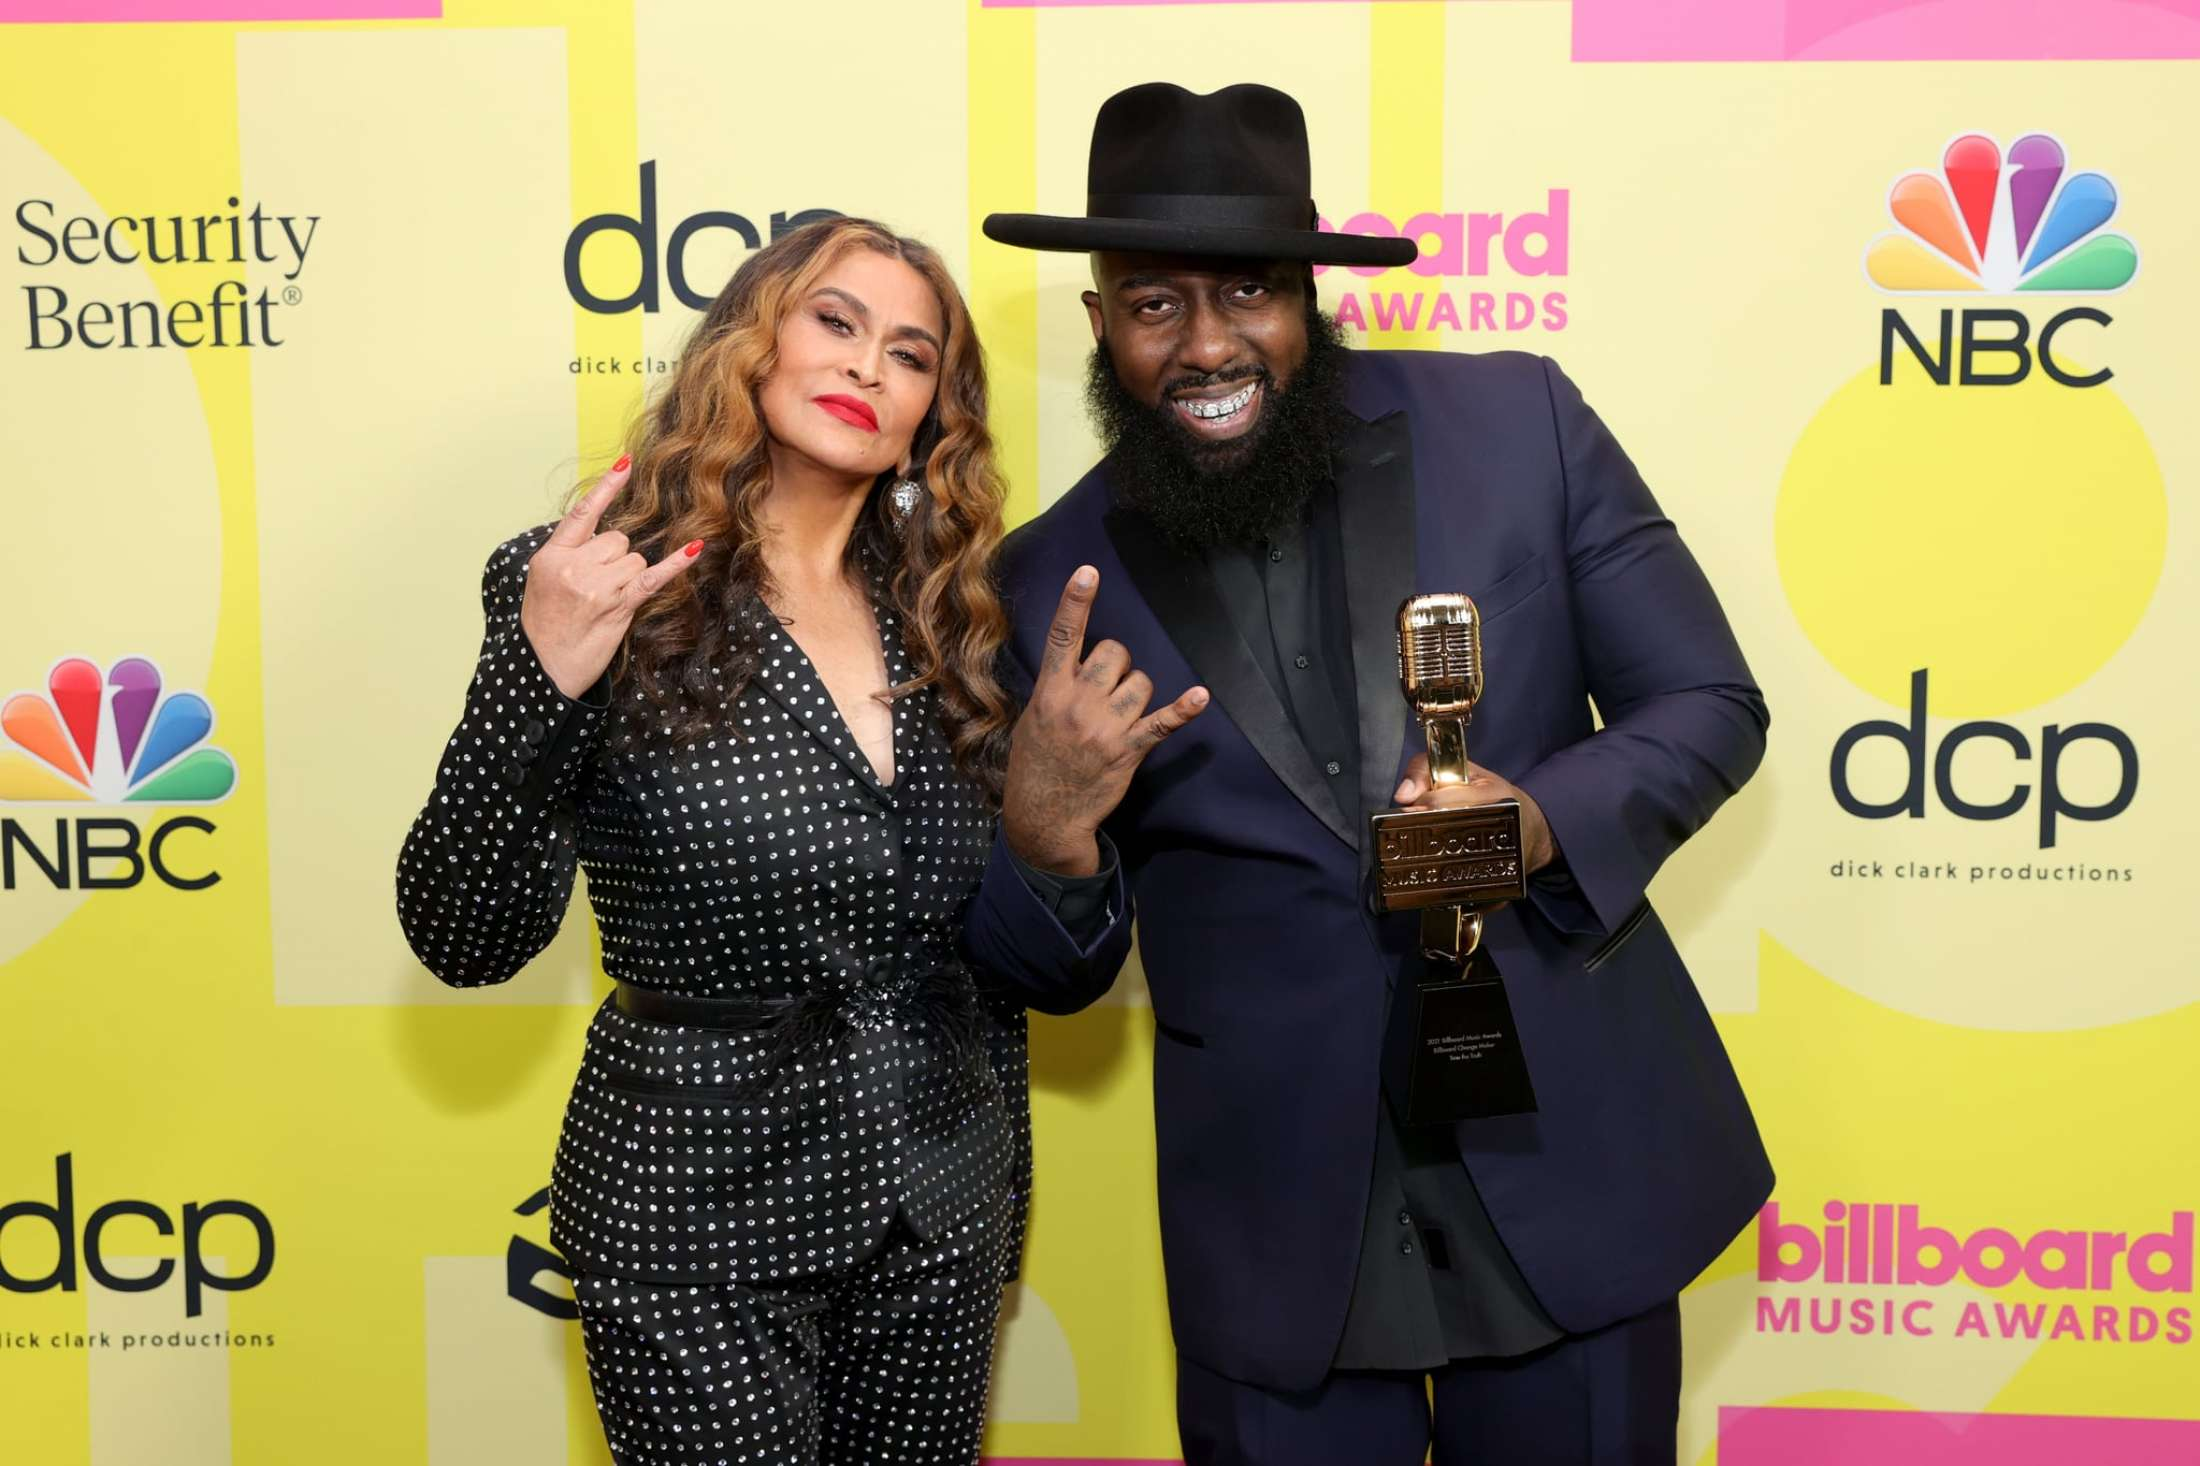 Trae Tha Truth and Tina Knowles-Lawson